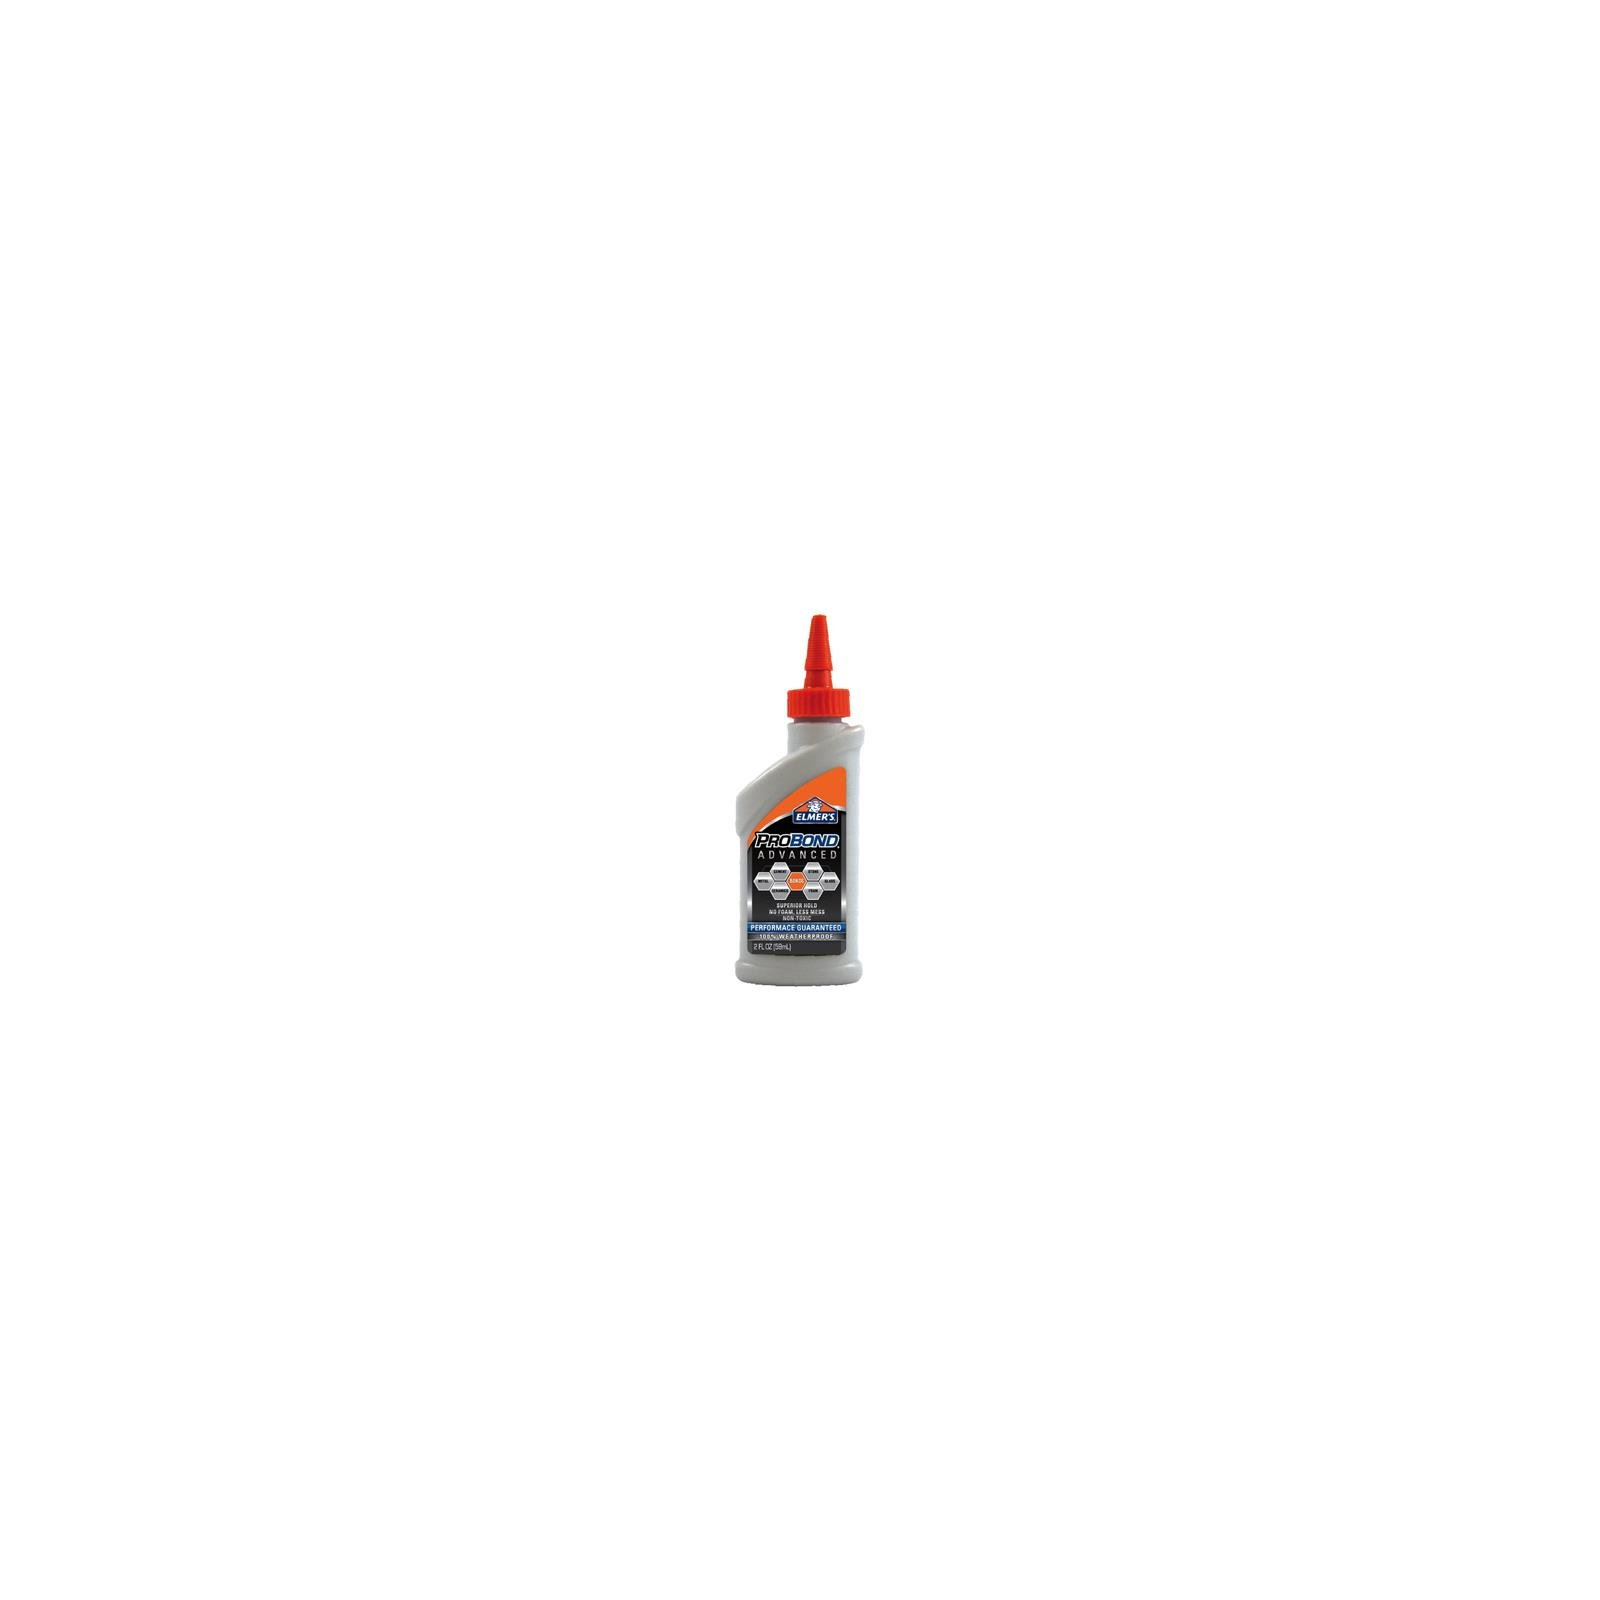 Elmer's E7503 8 Oz ProBond Advanced Adhesive